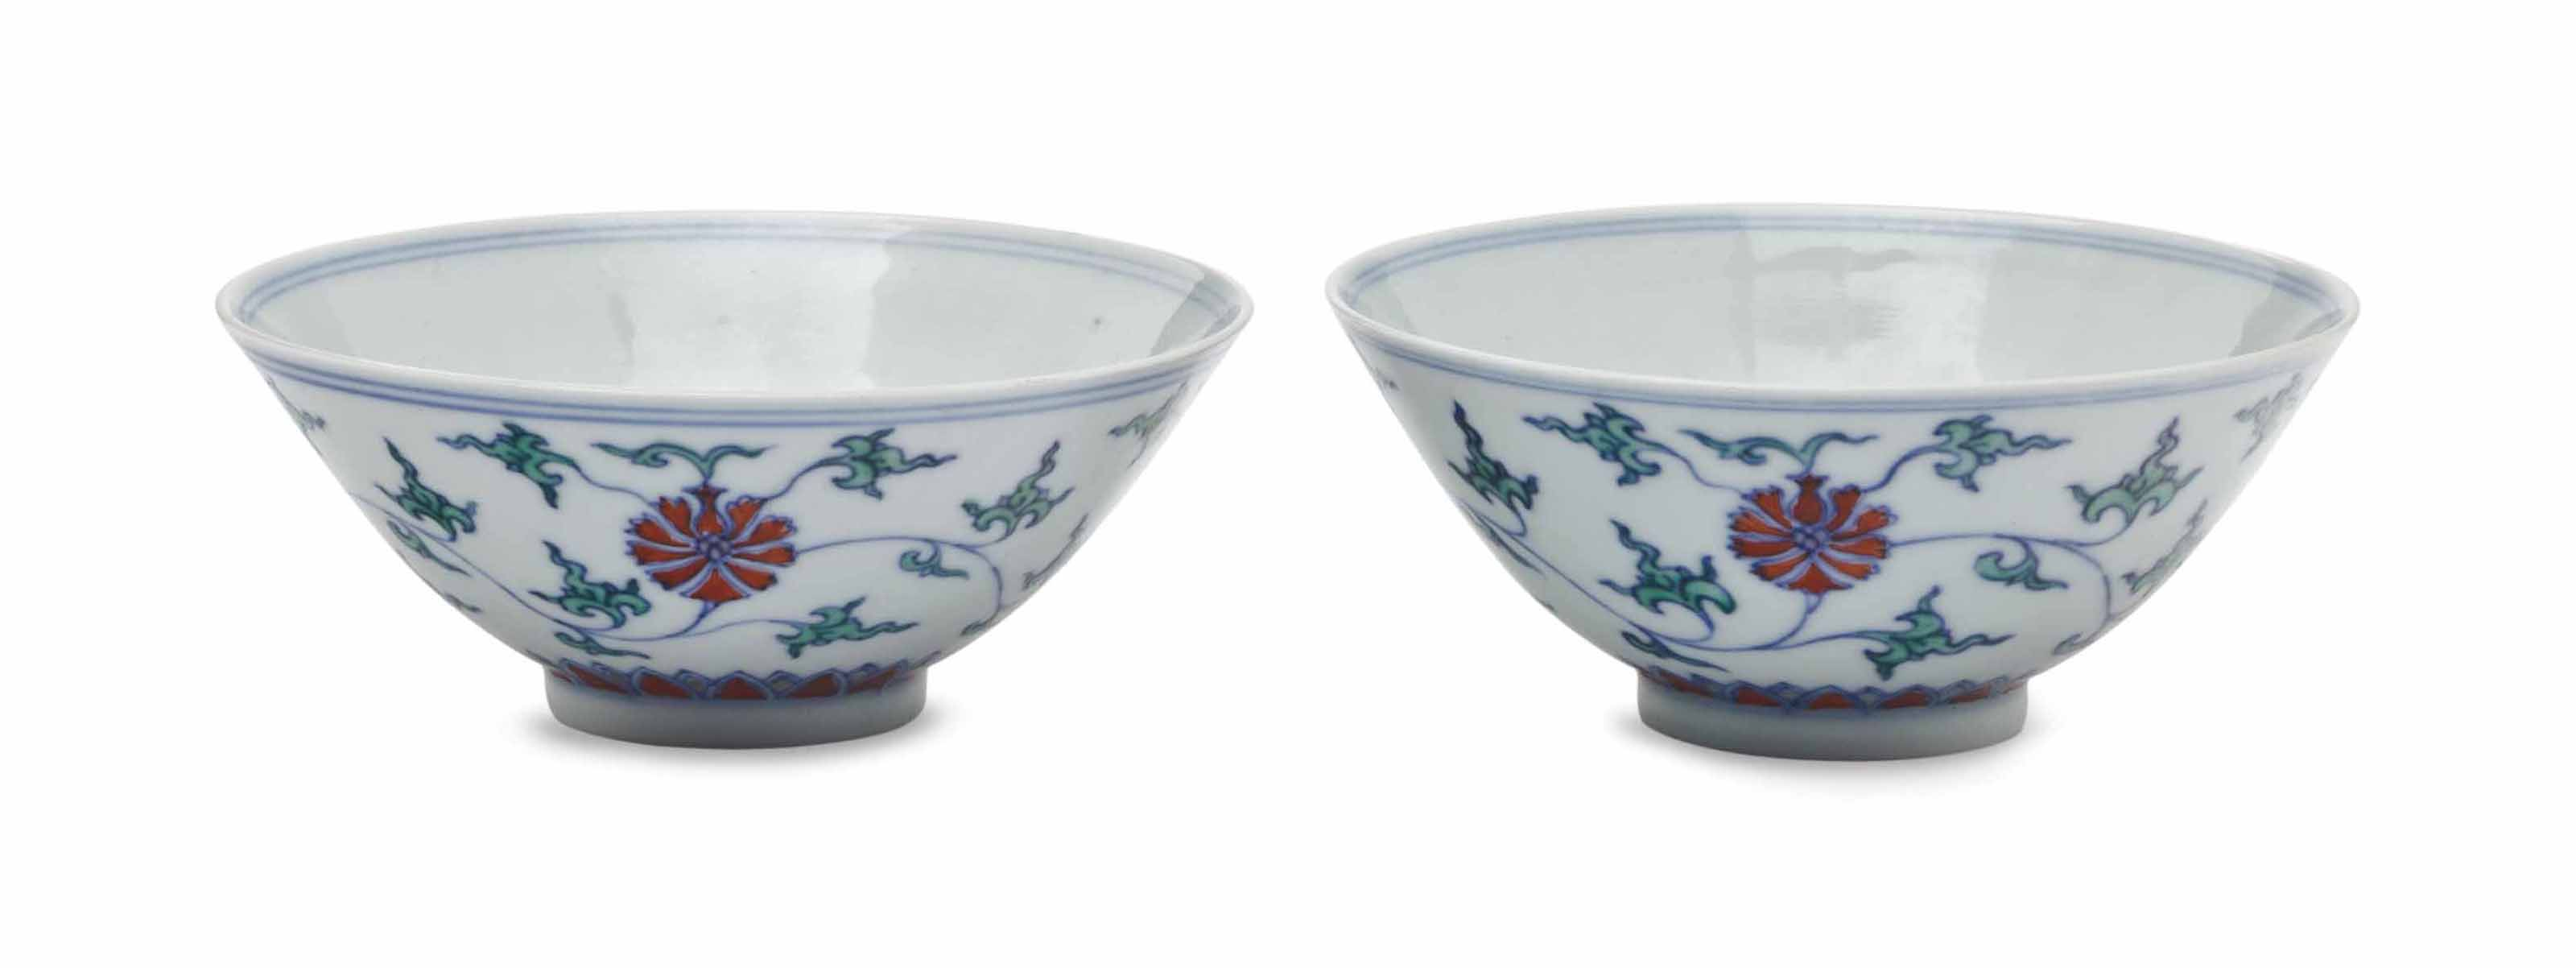 A PAIR OF CHINESE SMALL DOUCAI